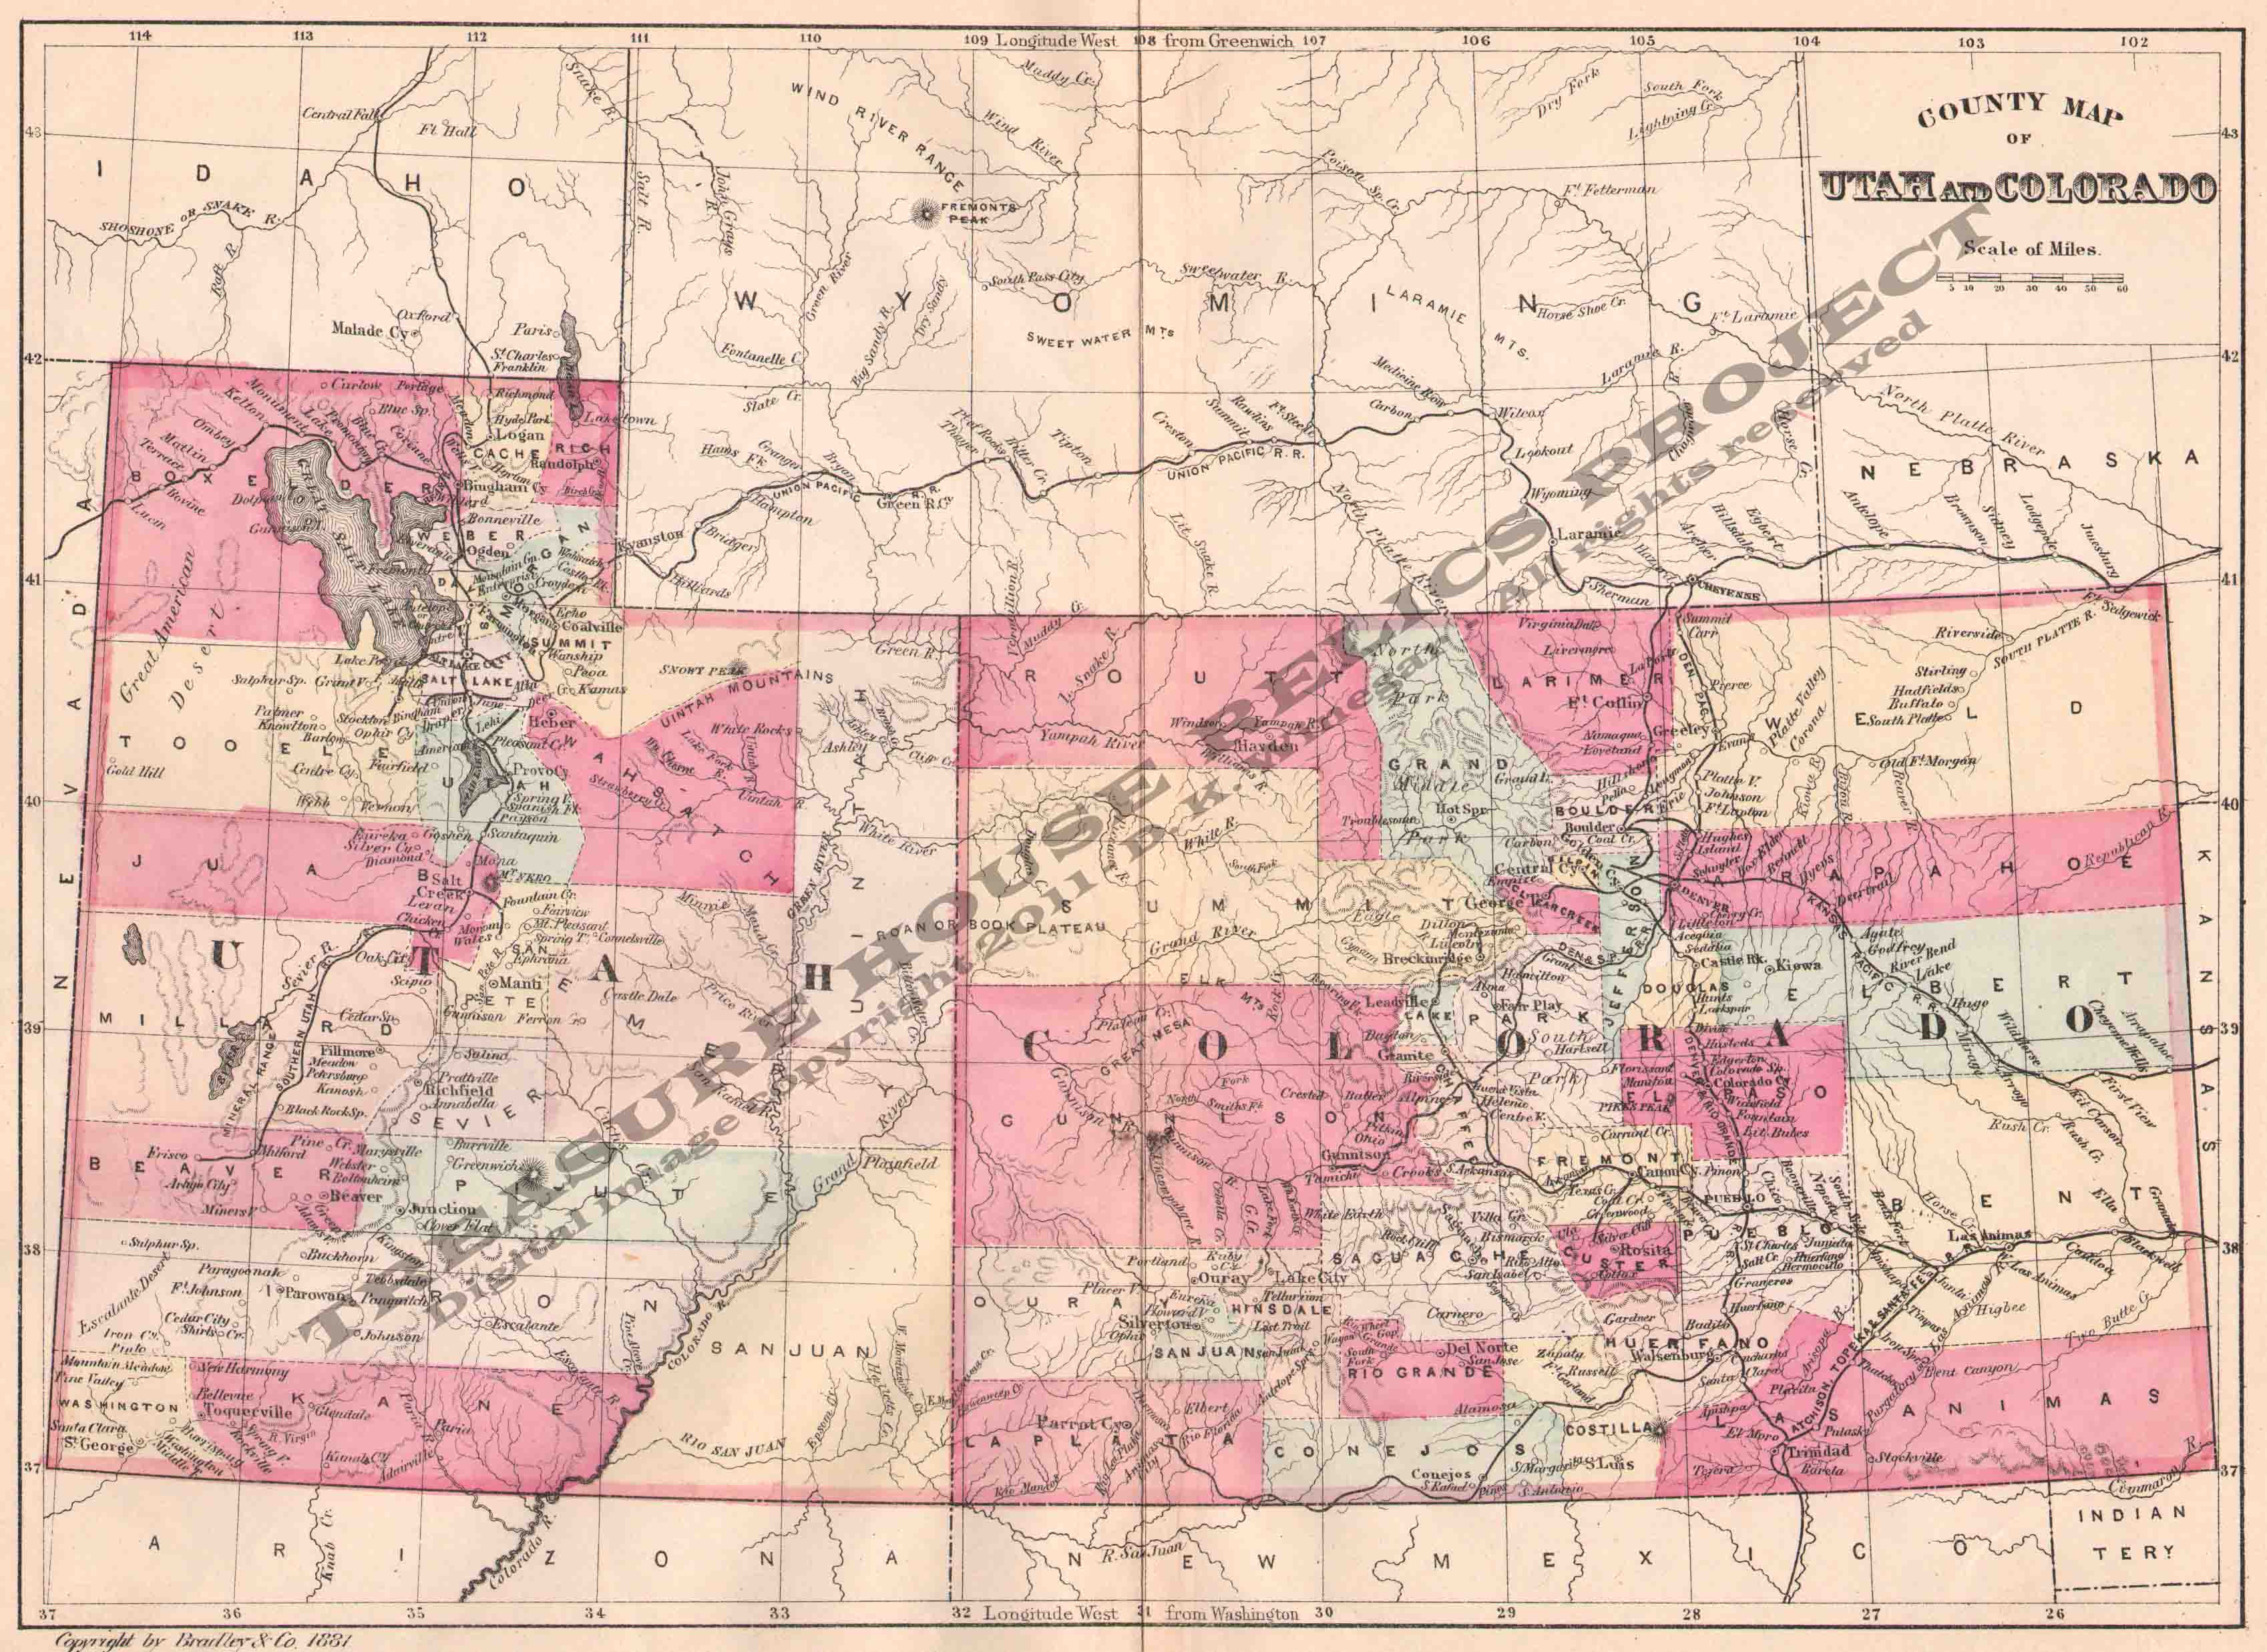 MAP_UTAH_COLORADO_BRADLEY___CO_1881_EMBOSS.jpg